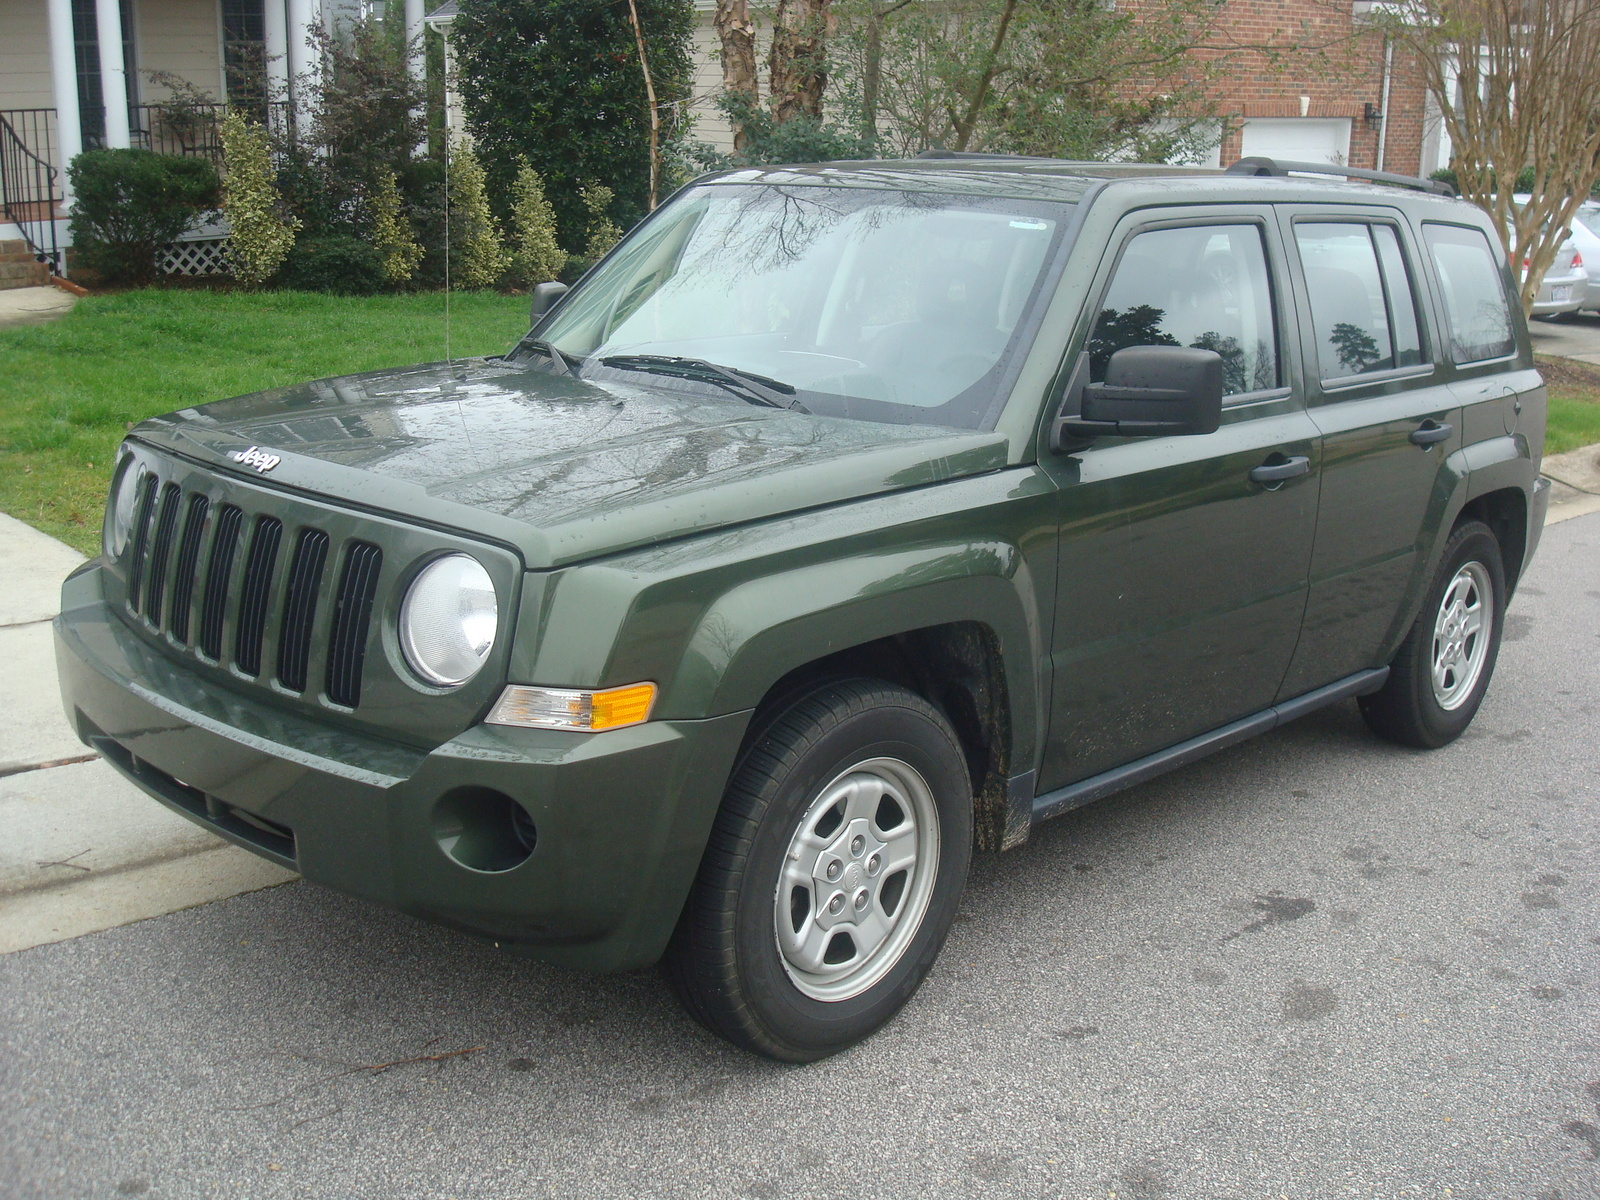 2008 Jeep Patriot Exterior Pictures Cargurus